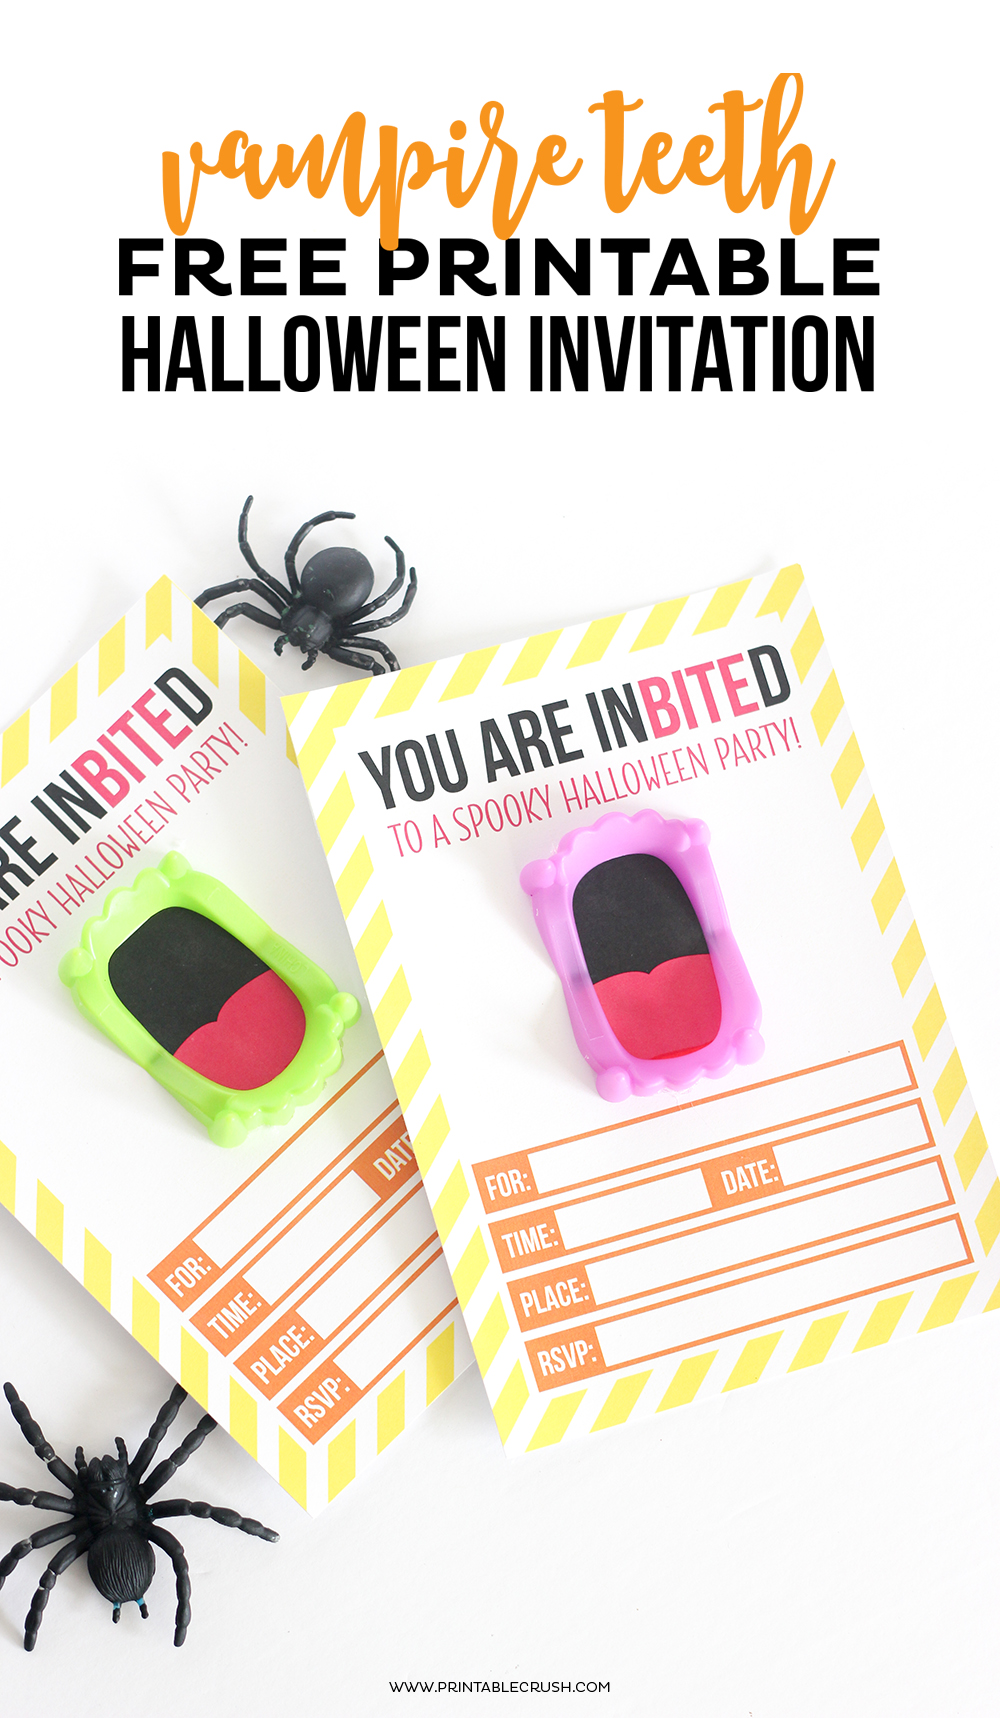 Vampire Teeth Halloween Invitations